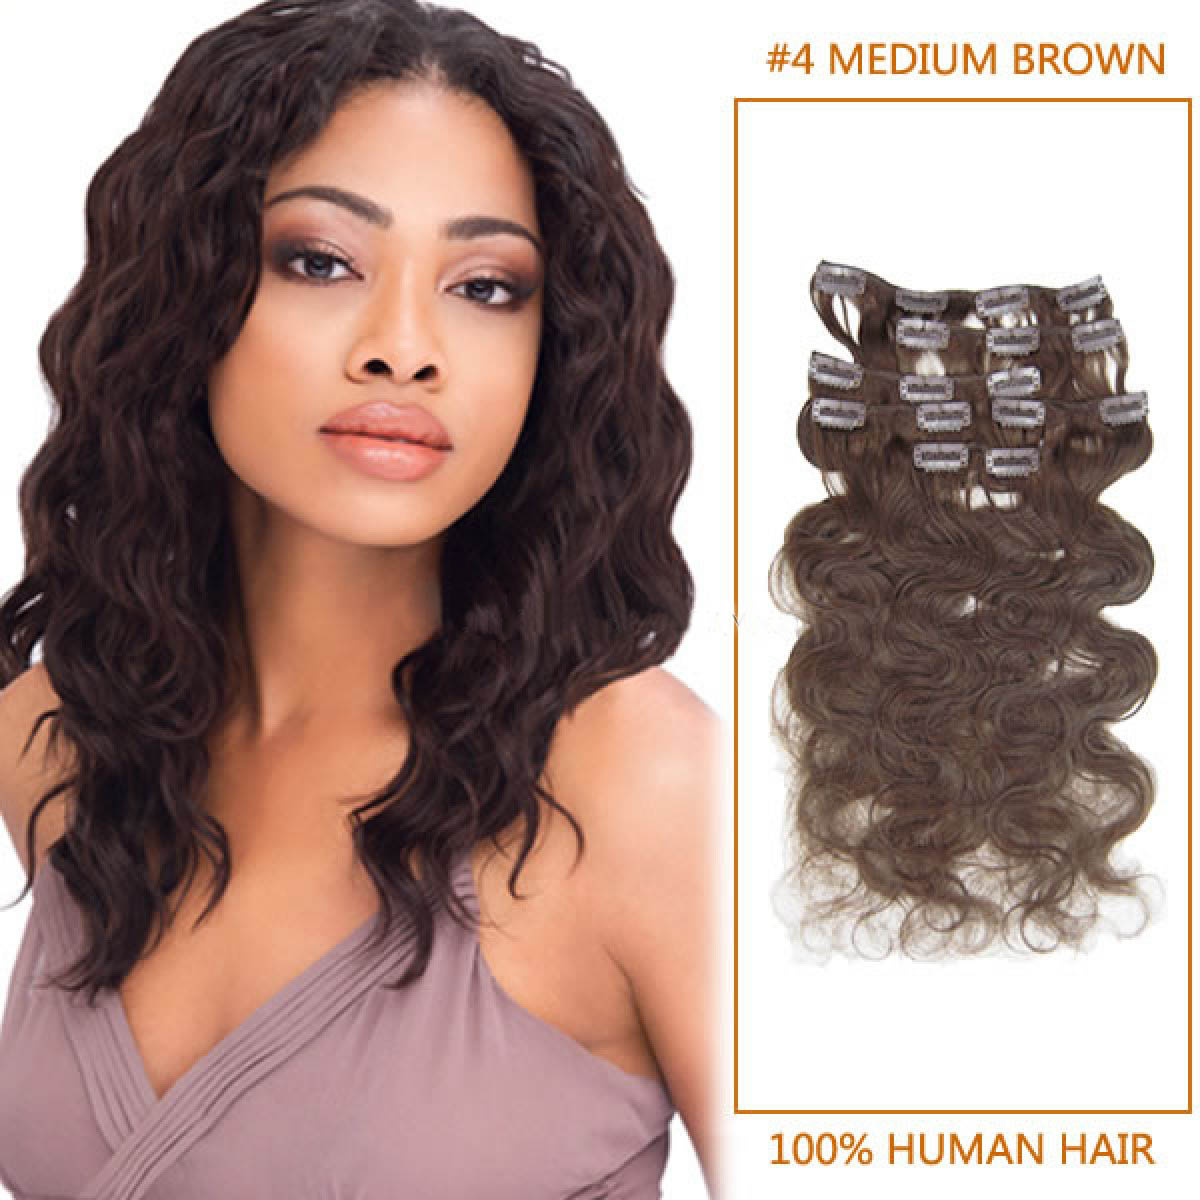 Inch 4 medium brown wavy clip in remy human hair extensions 7pcs 20 inch 4 medium brown wavy clip in remy human hair extensions 7pcs pmusecretfo Image collections